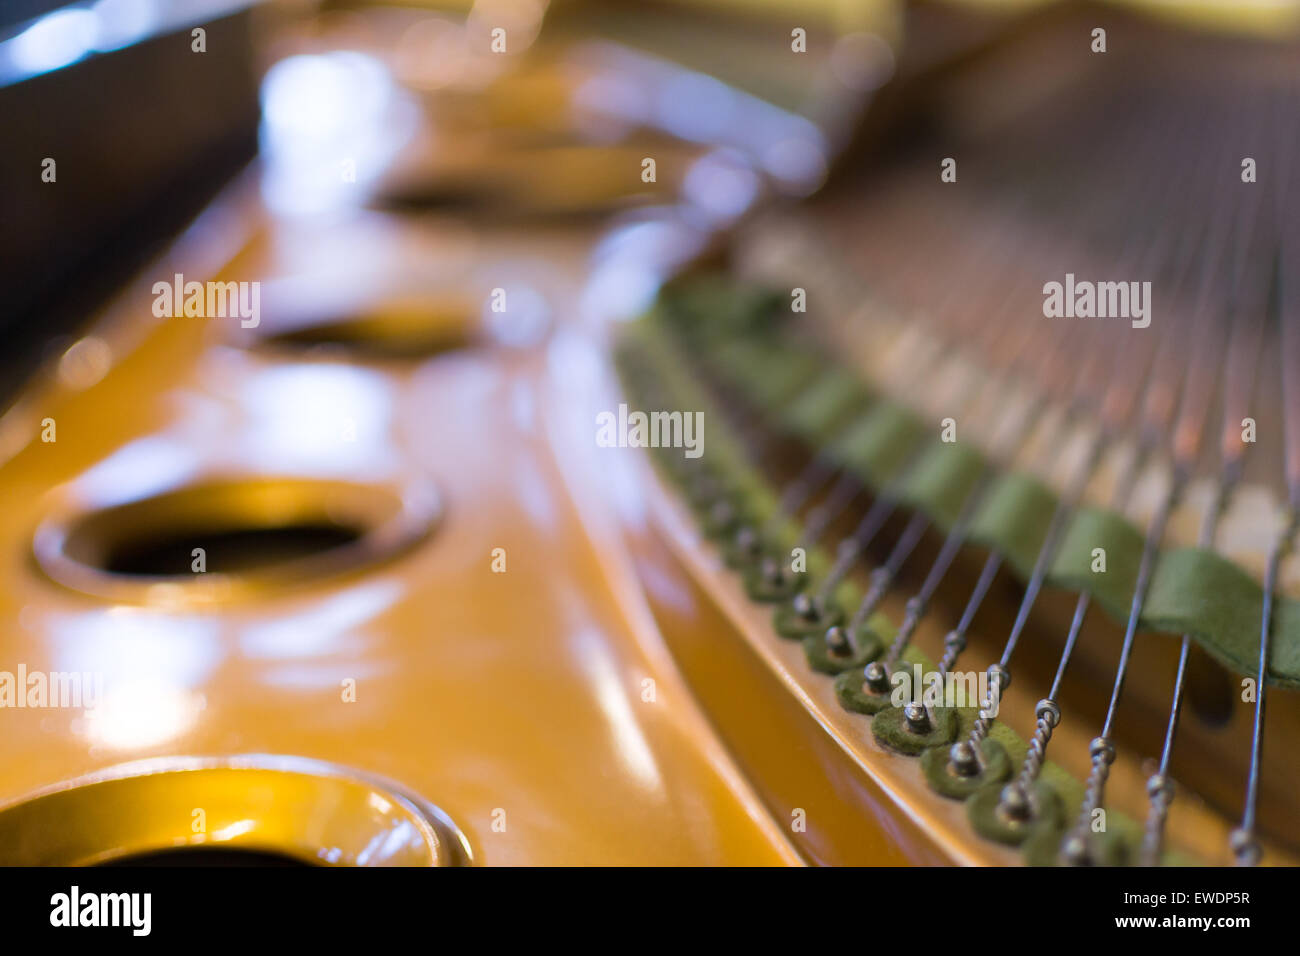 Detailed image of the strings of a classical Grand Piano in close-up - Stock Image